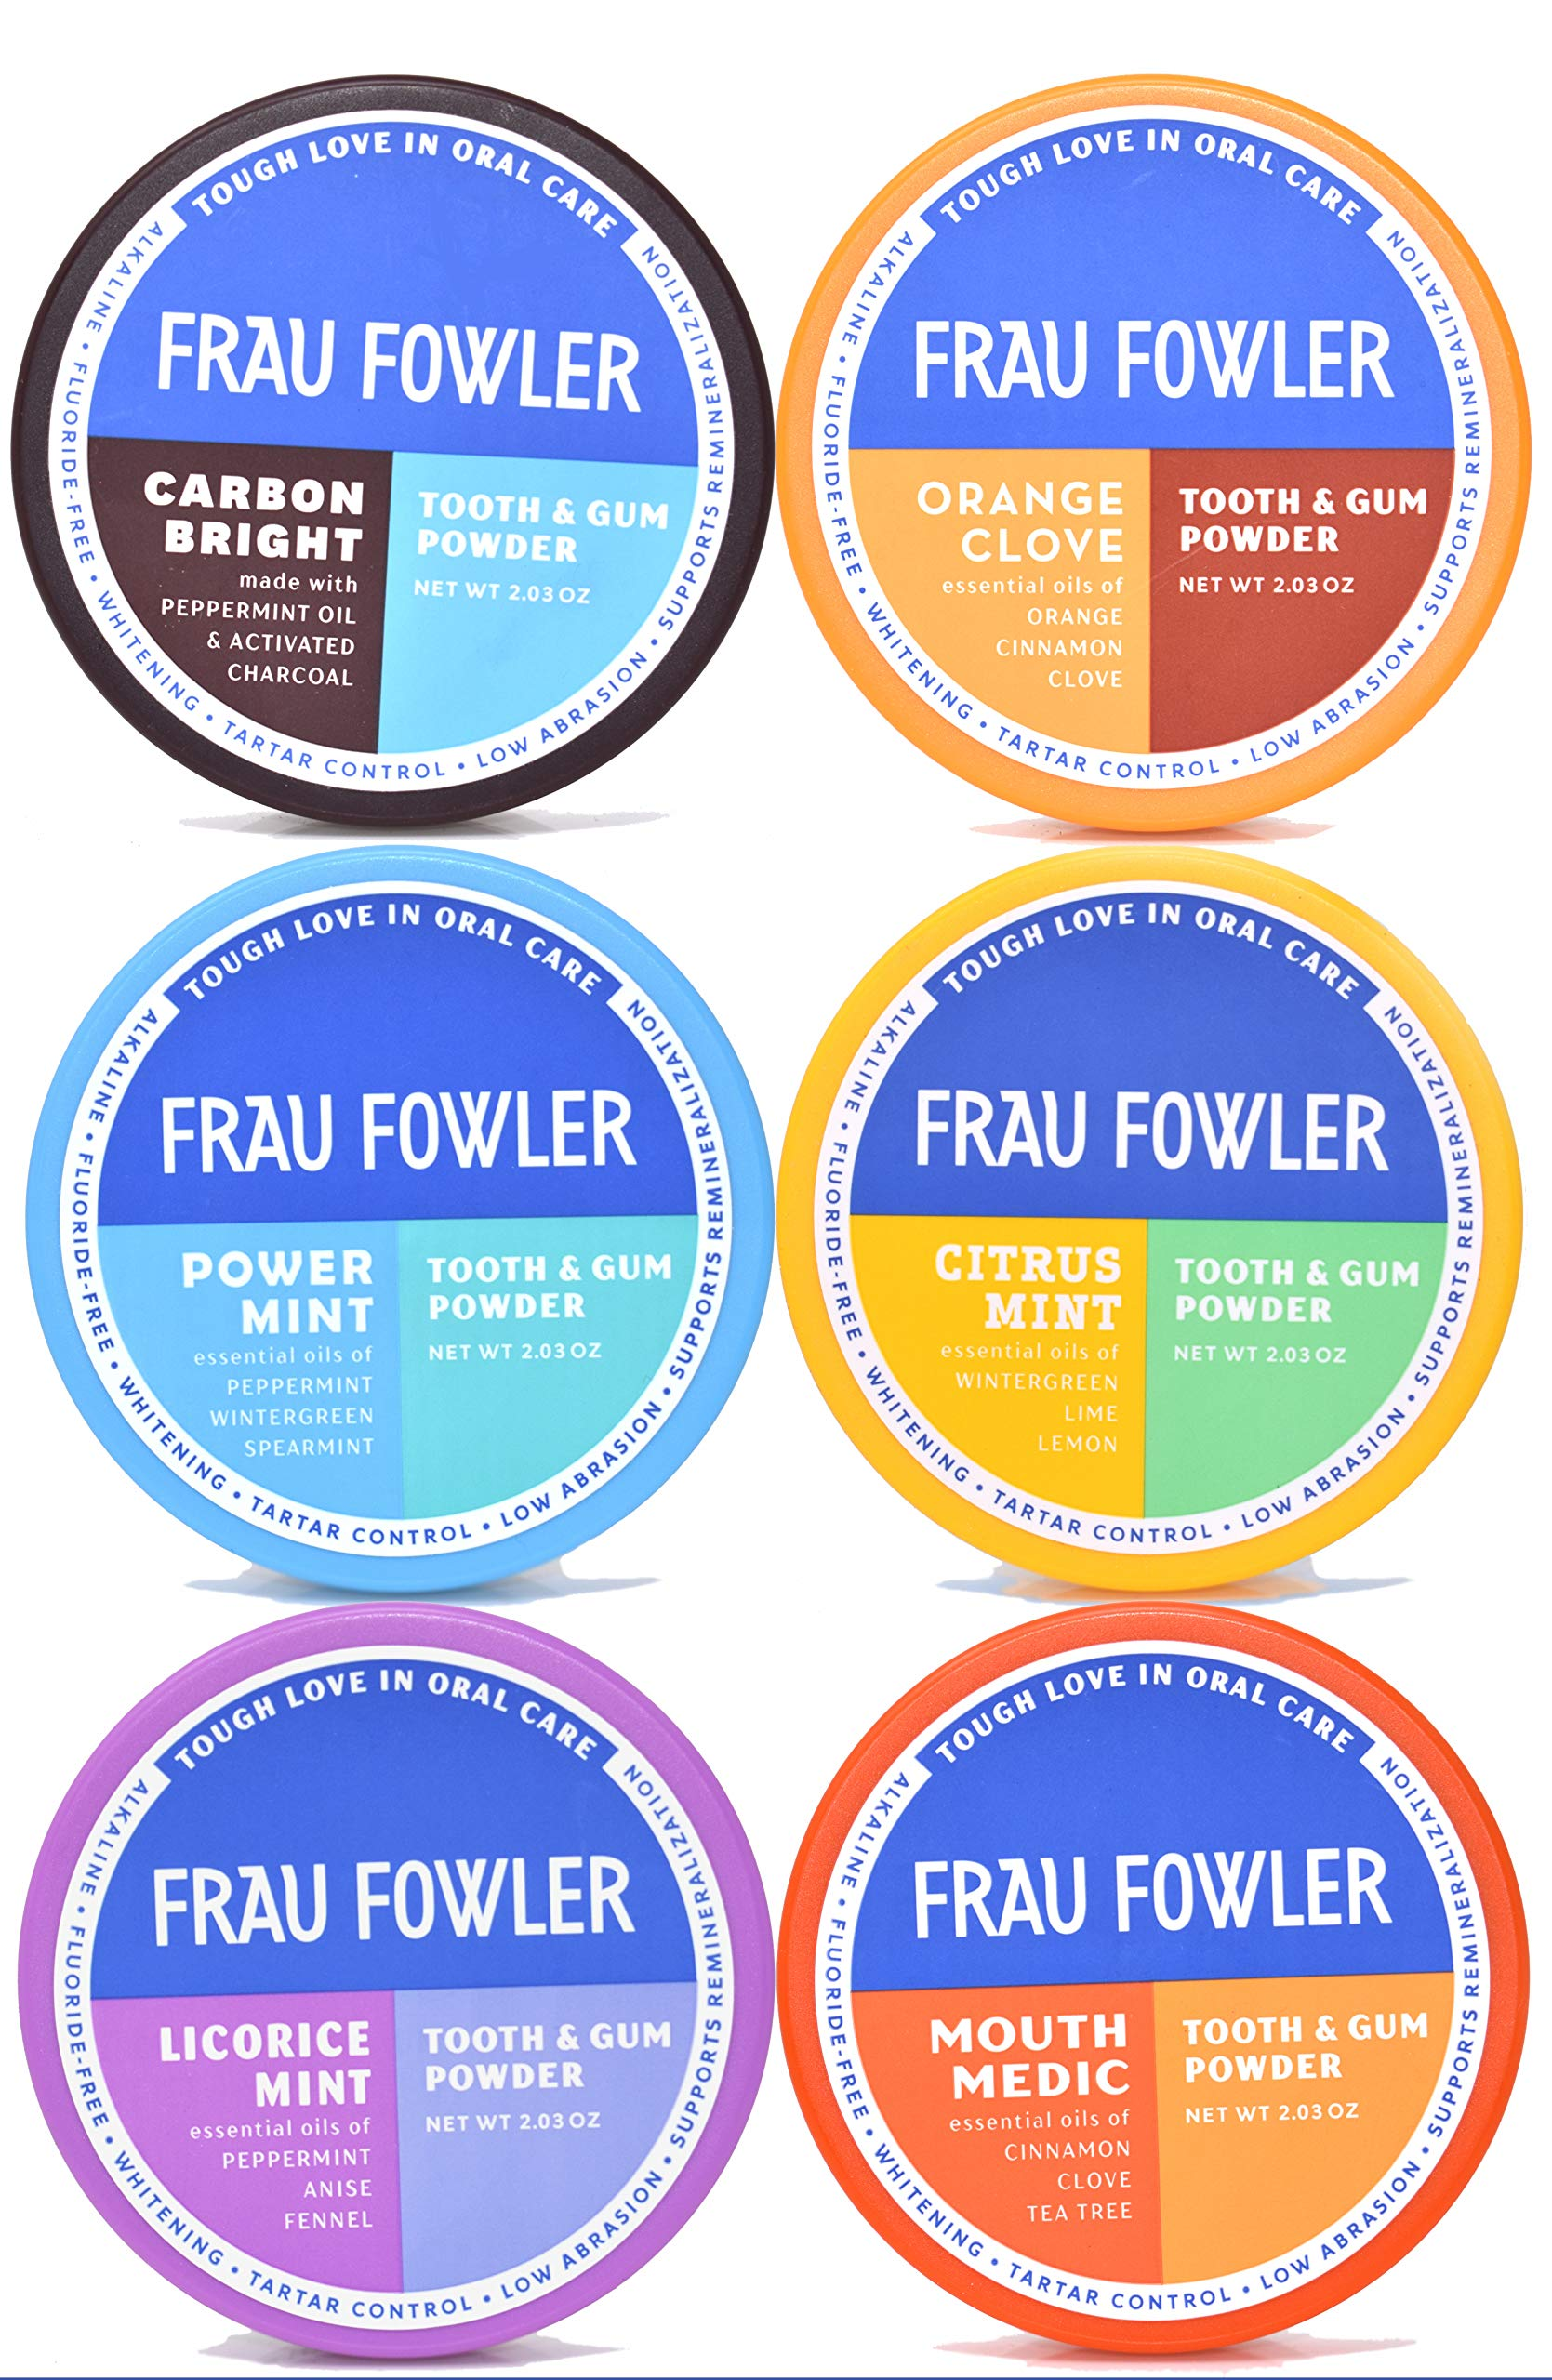 Frau Fowler Natural Oral Care (Variety 6 Pack) - Get All The Fun Flavors- Power Mint, Orange Clove, Mouth Medic, Citrus Mint, Licorice Mint and Carbon Bright (Activated Charcoal), 12 oz